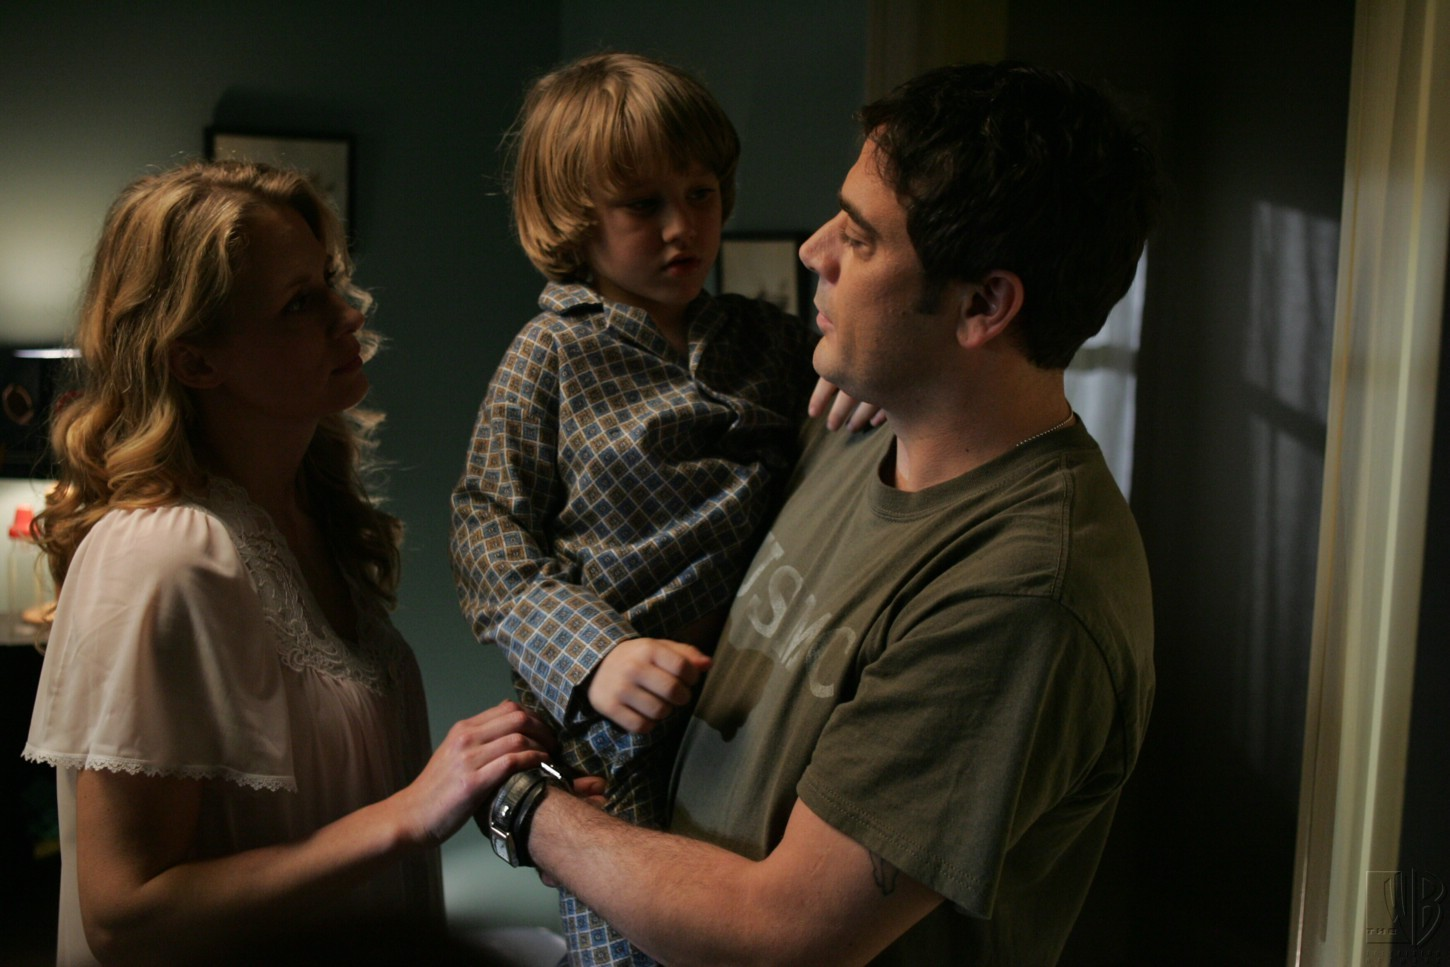 Supernatural season 7 episode 3 young amy / Game of thrones